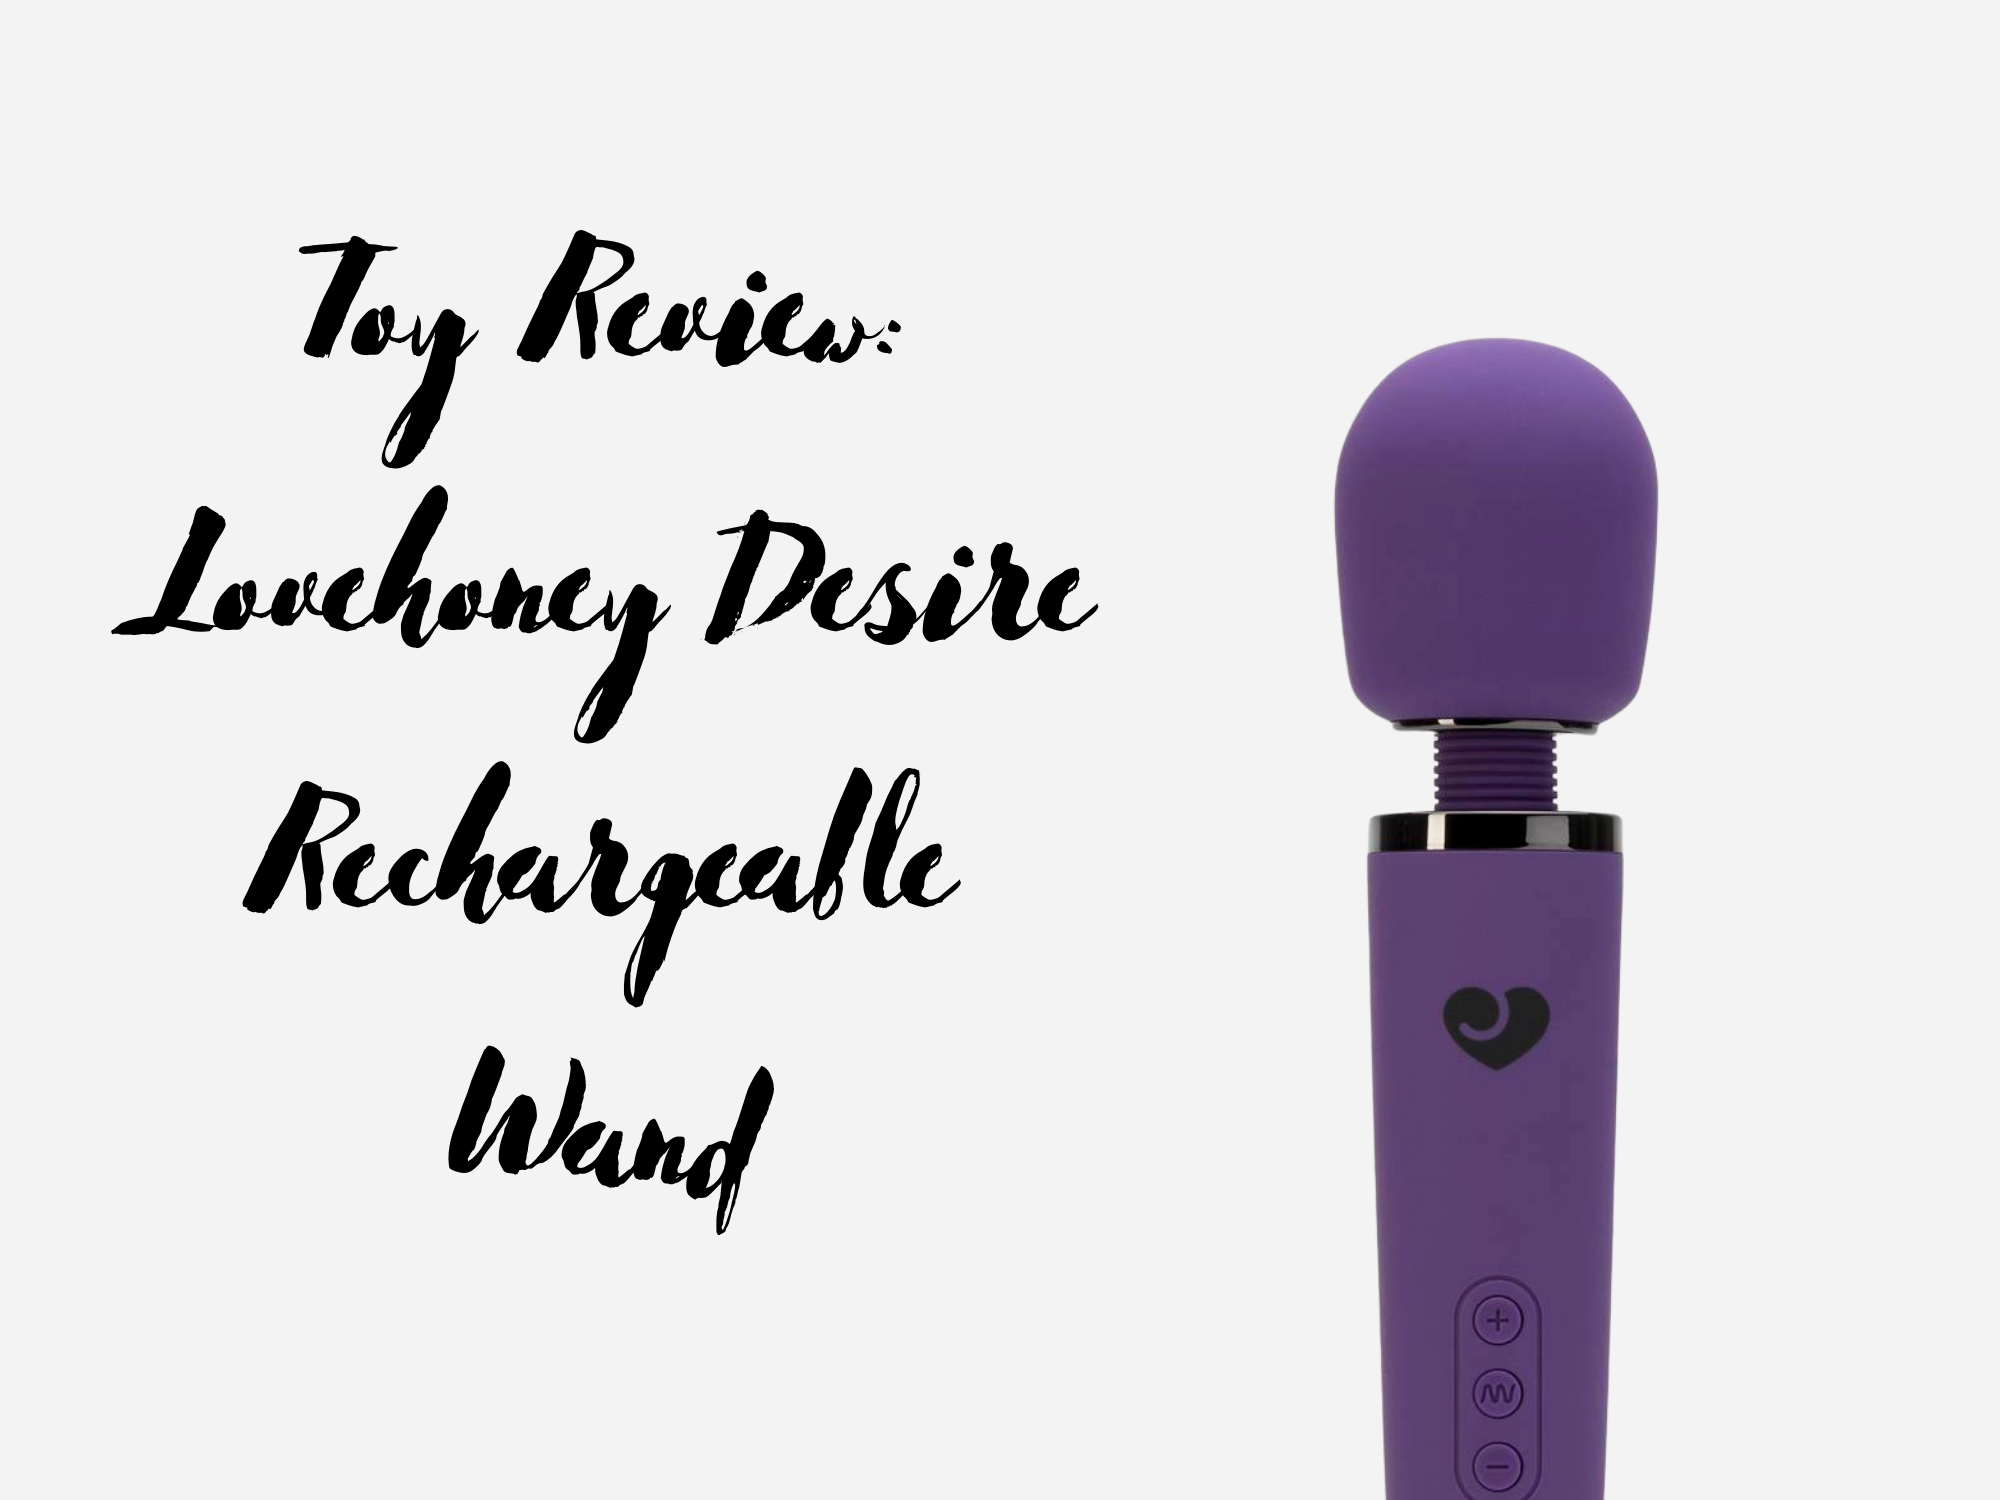 Header image for a review of the Lovehoney Desire Rechargeable Wand